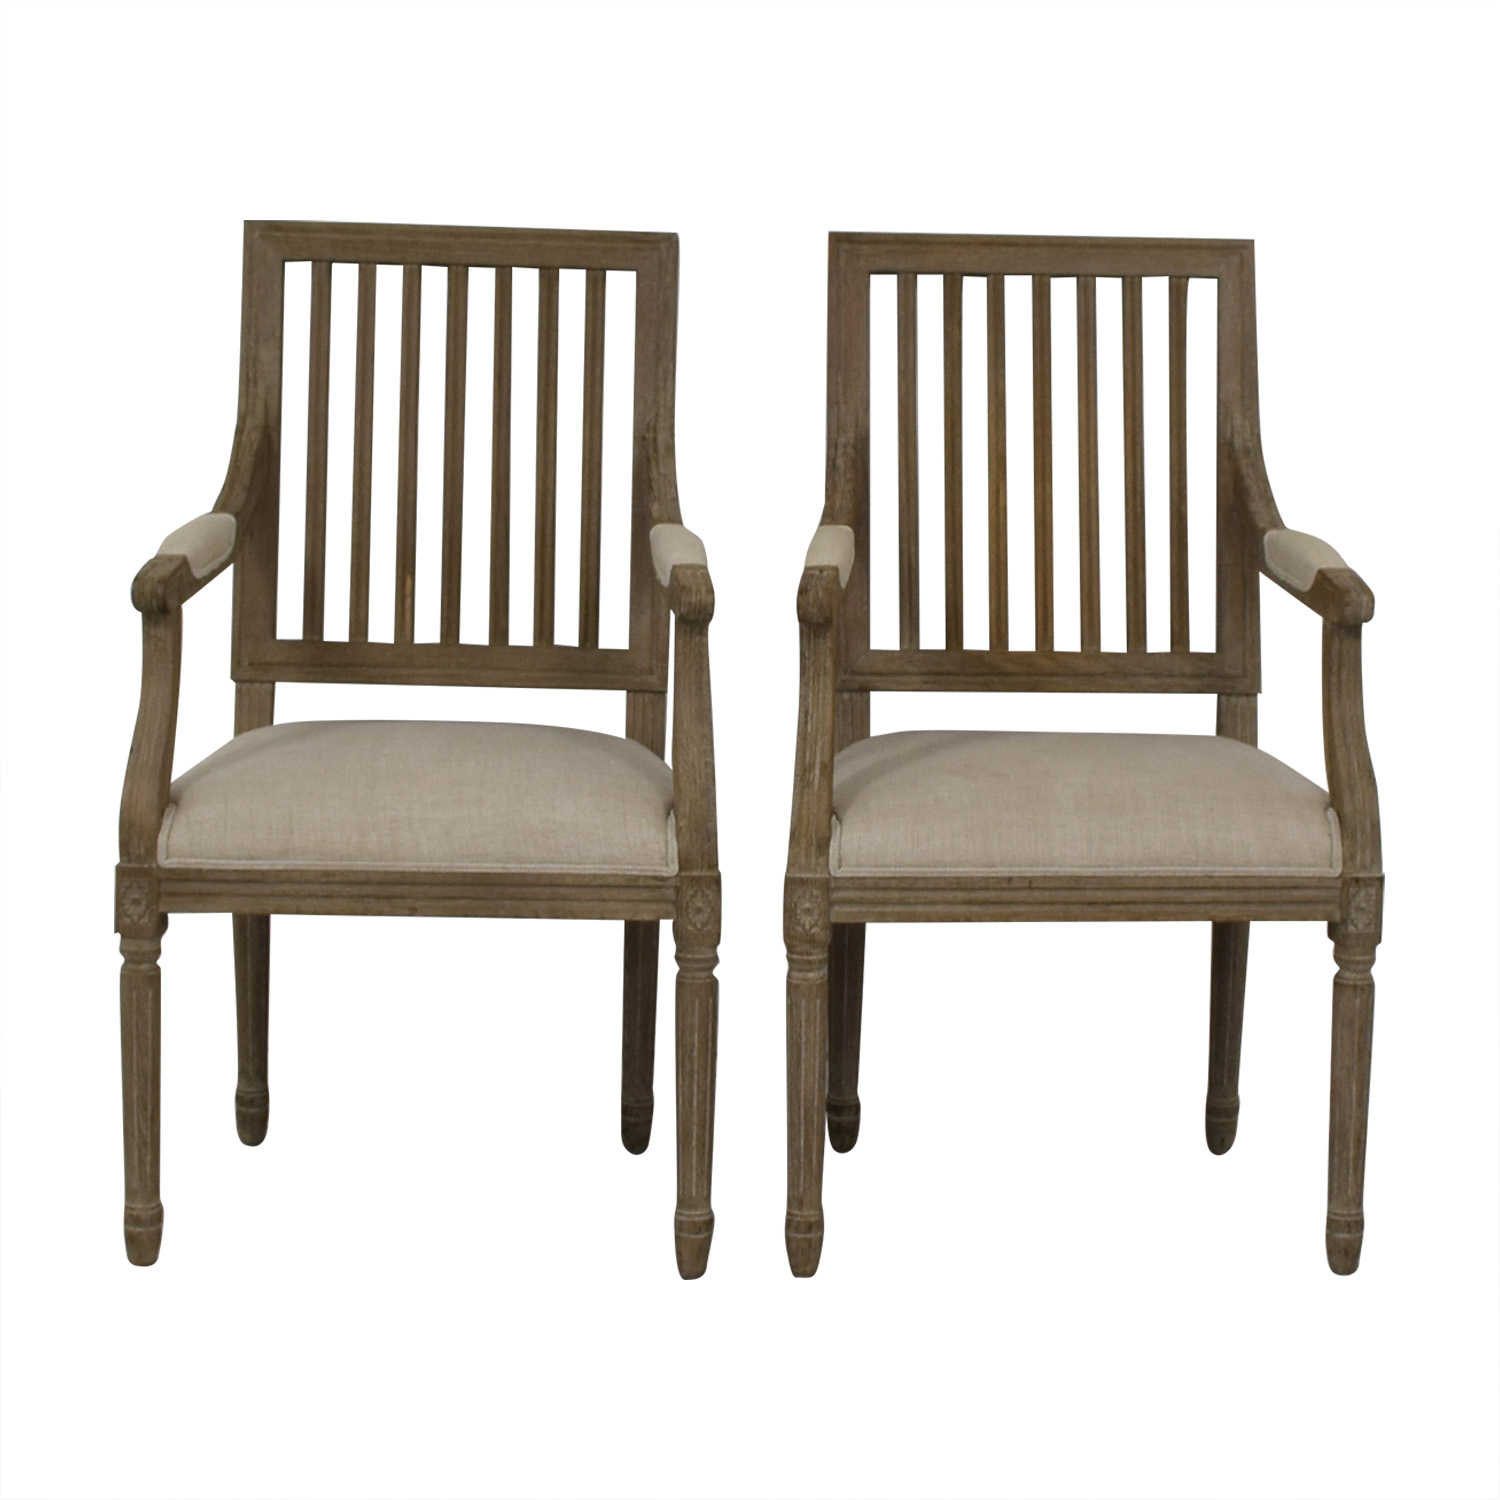 Restoration Hardware Restoration Hardware Spindle Back Dining Chairs for sale